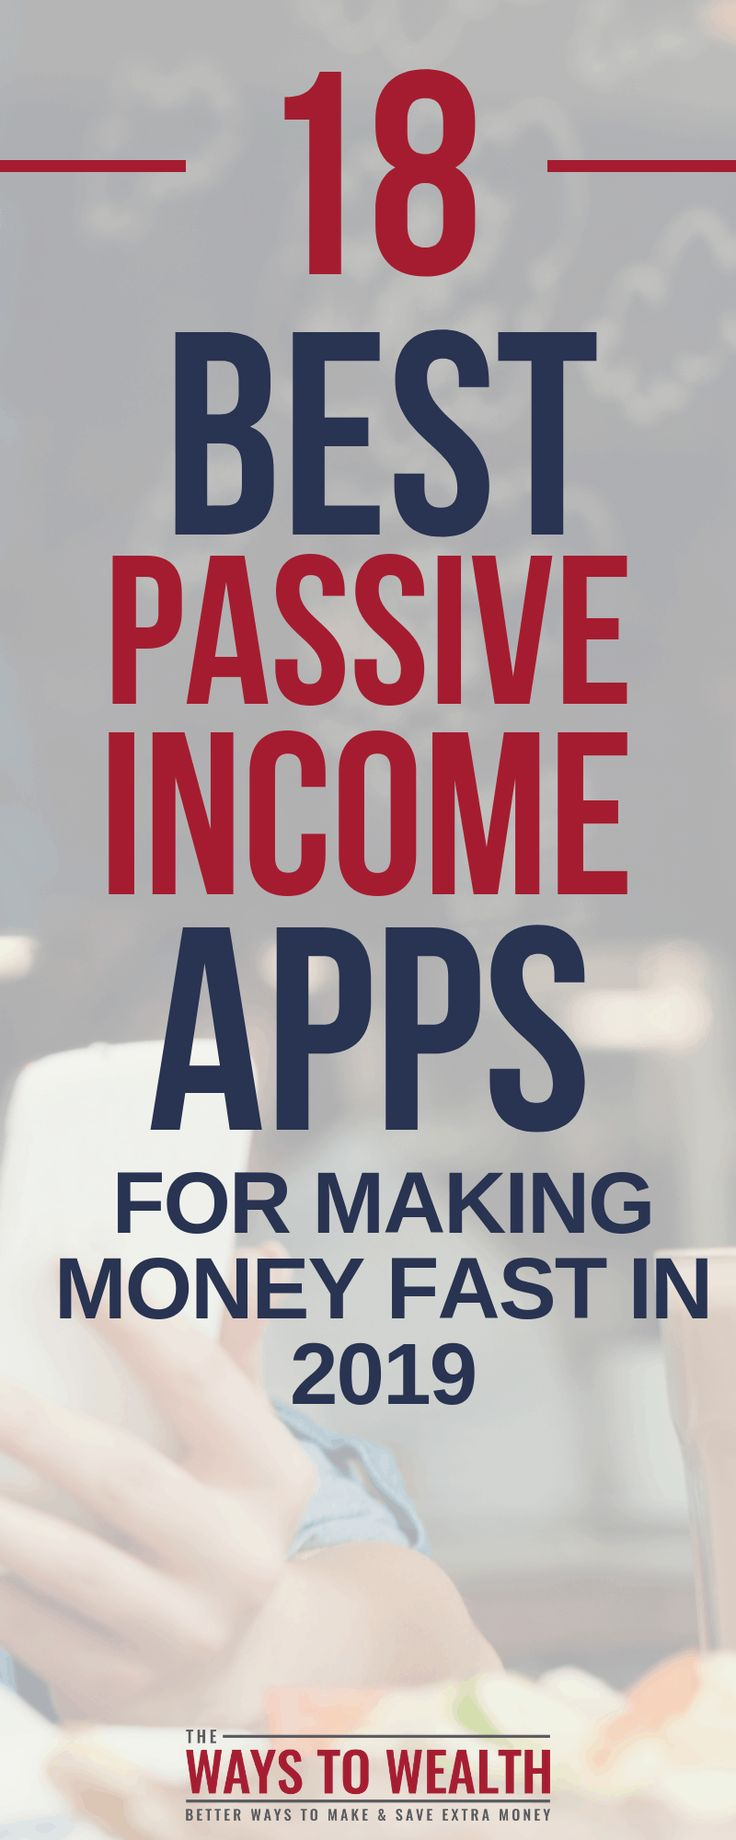 The 18 Best Passive Income Apps For Making Money Fast In 2019 – R.J. Weiss at The Ways To Wealth | Get Out Of Debt | Finance Tips